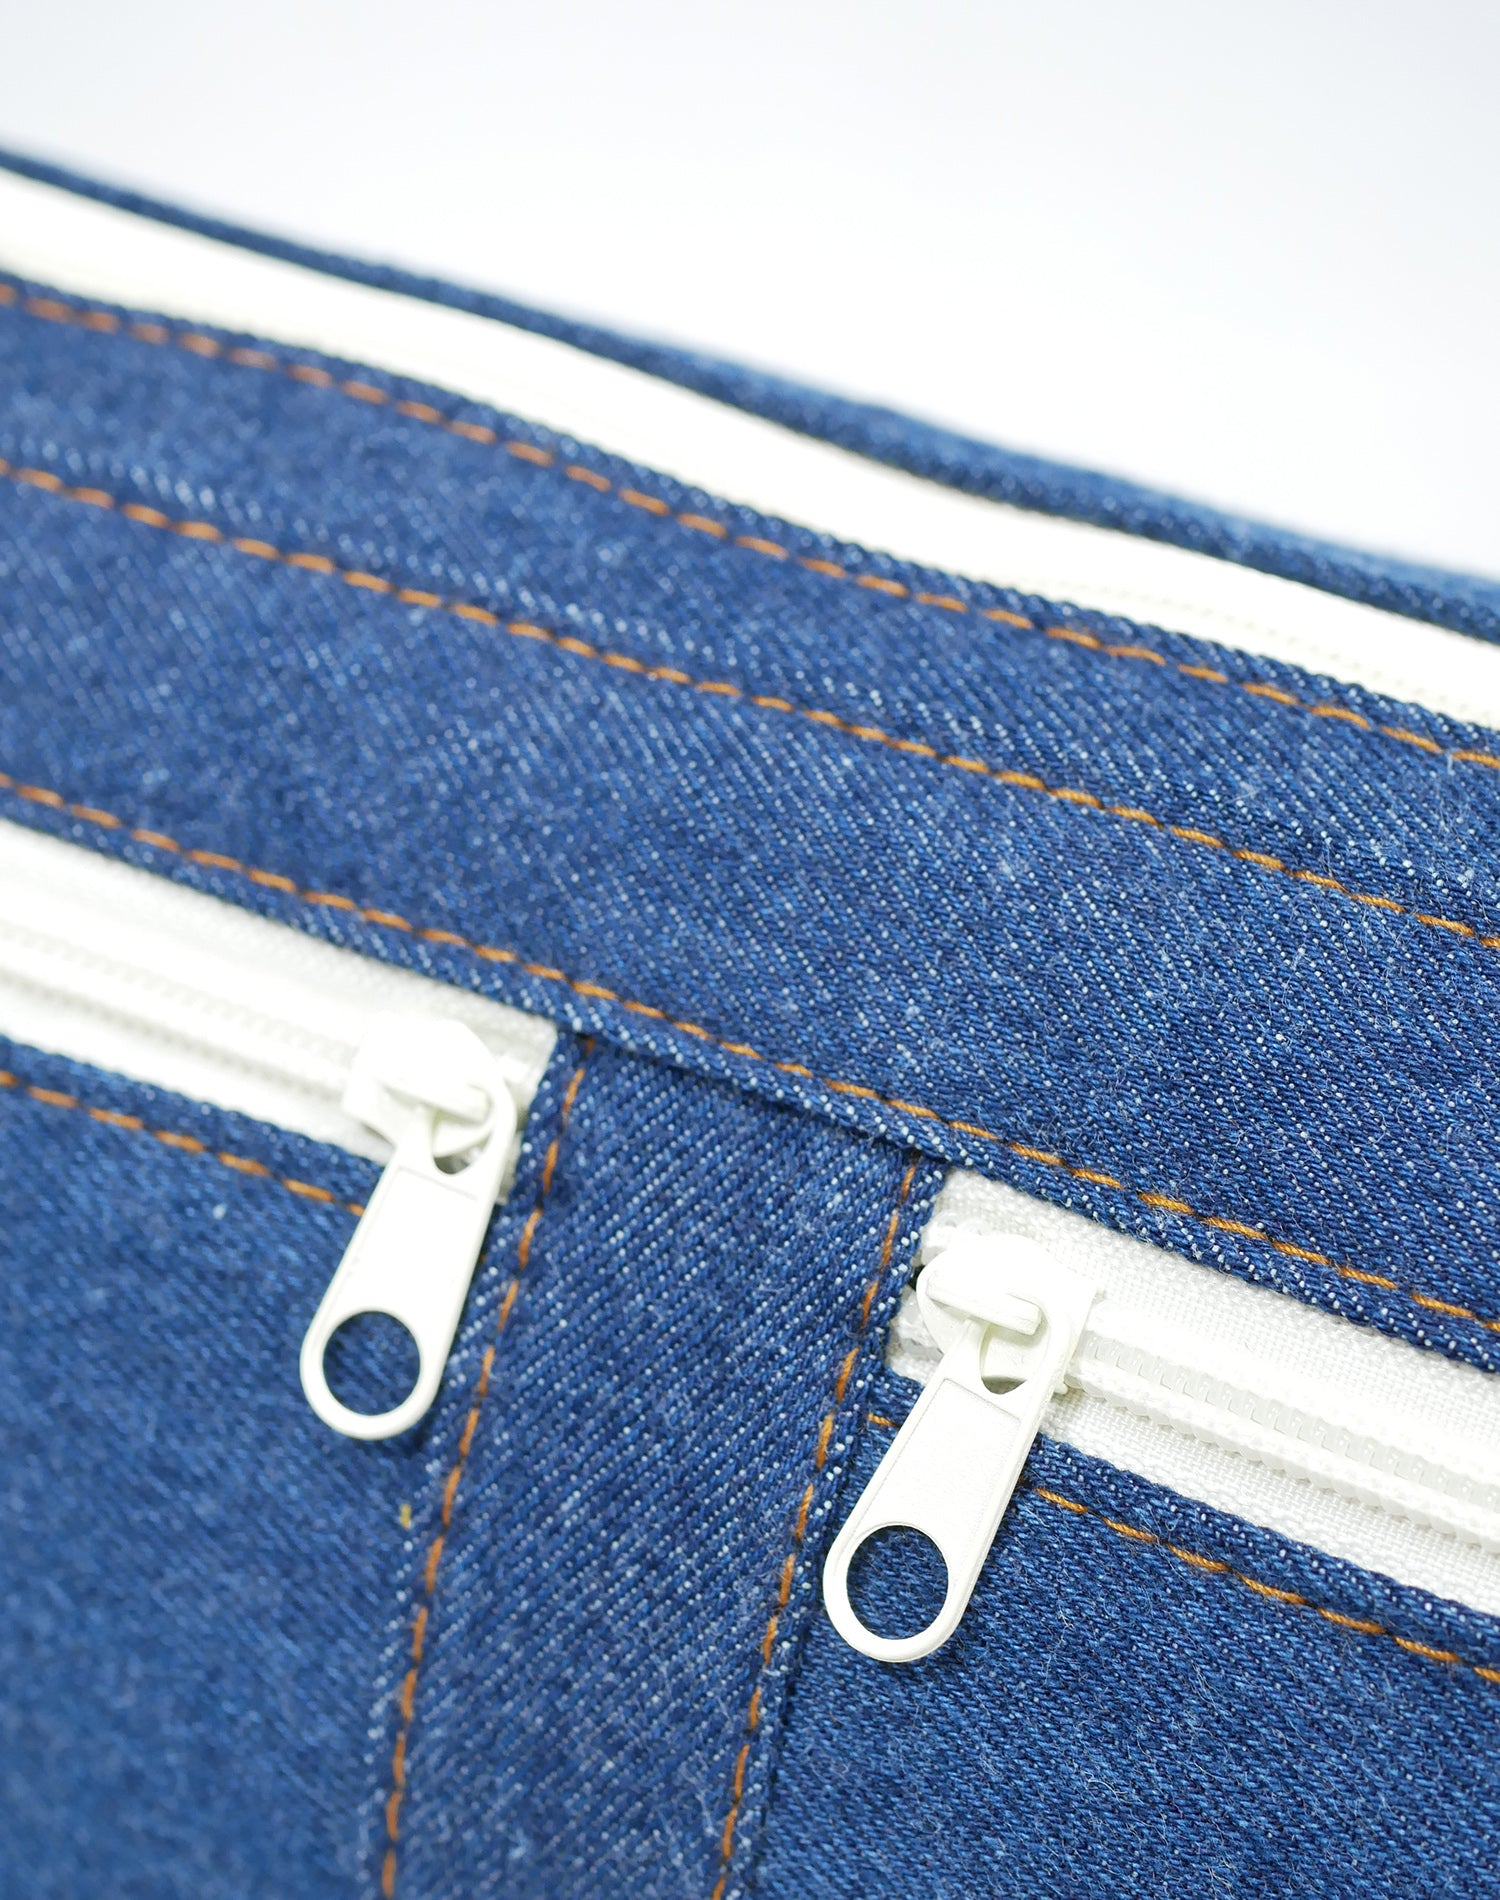 Indigo Denim Canvas Belt Sling Bag.牛仔帆布斜揹腰包